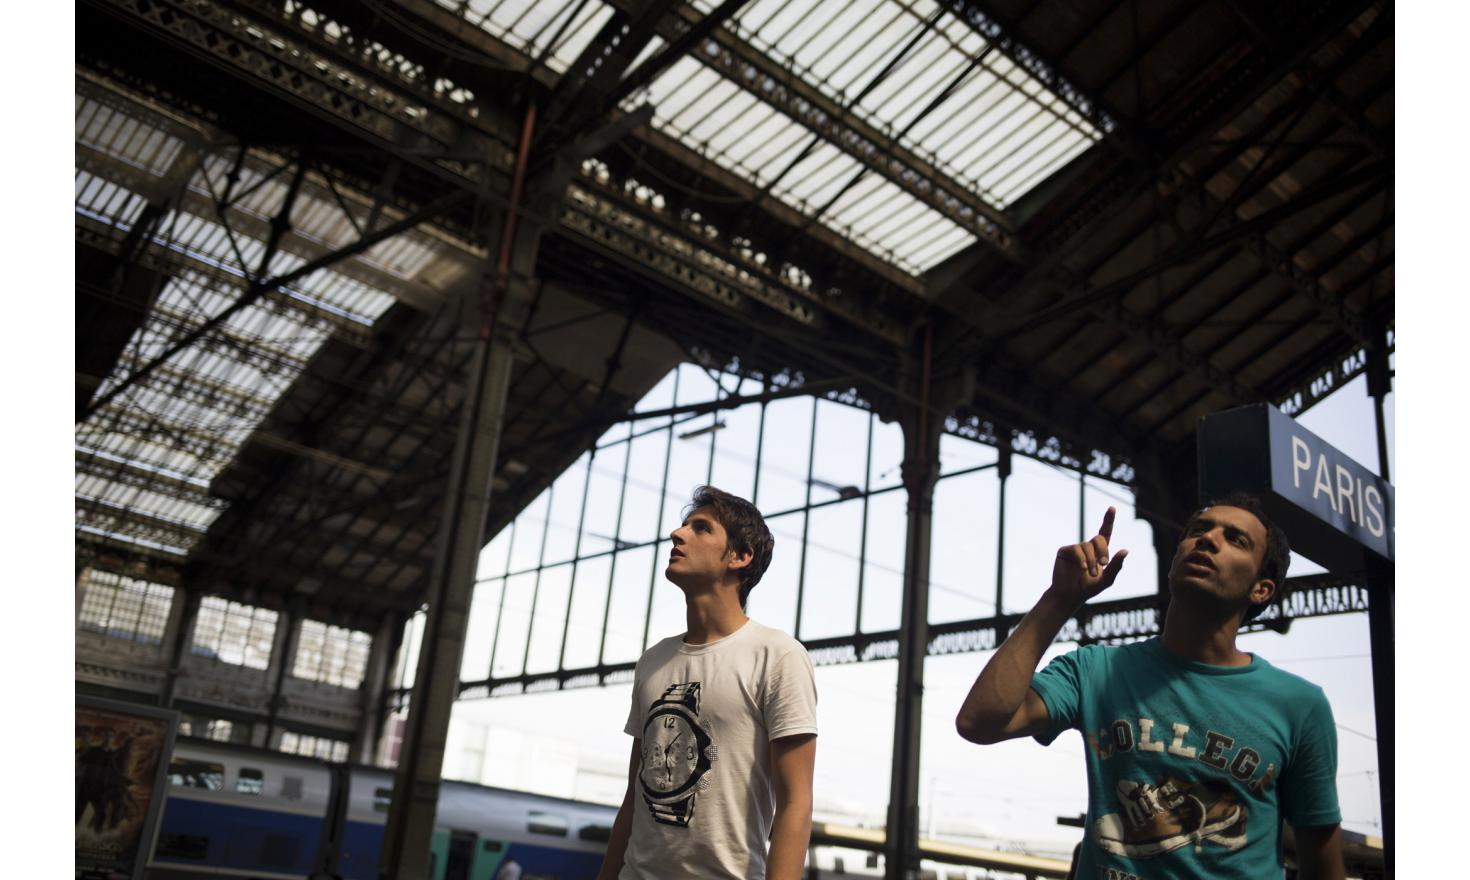 Paris, France 02/08/2013 Luqman and Fawad arrive in Gare de Lyon, one of the train station in Paris without being arrested by the police.